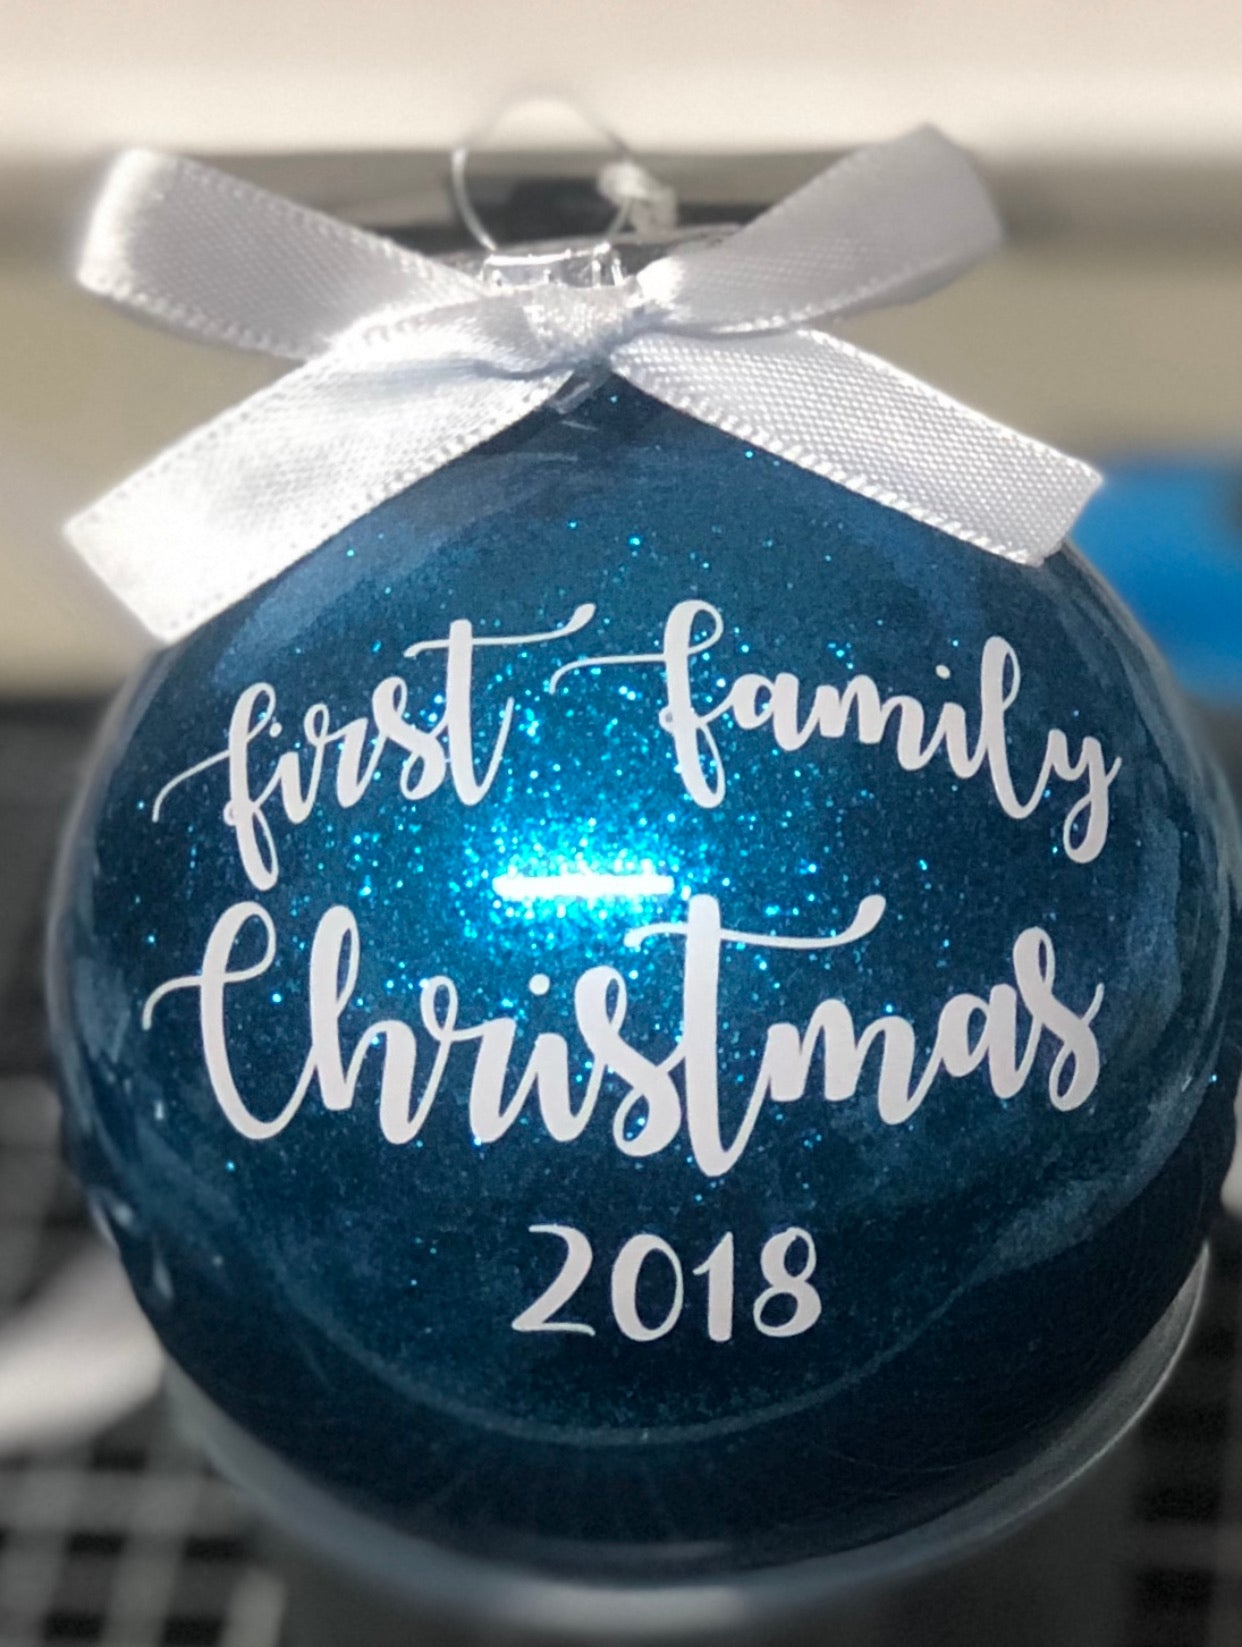 First family Christmas